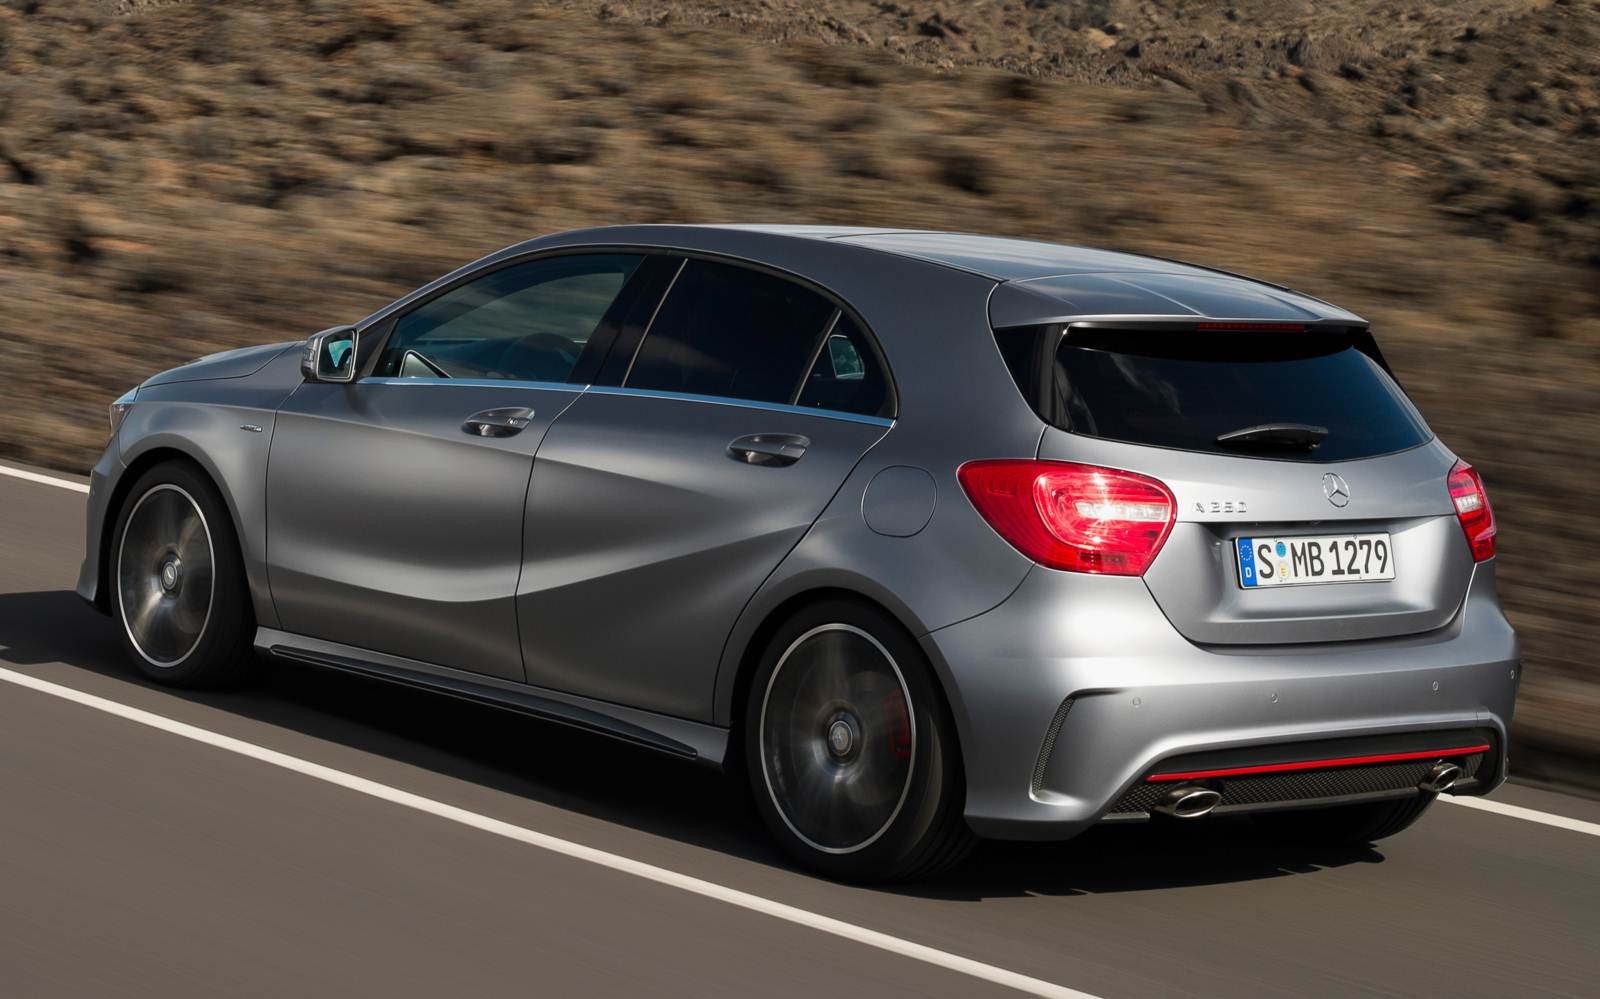 Mercedes-Benz A250 Turbo Sport x VW Golf GTI